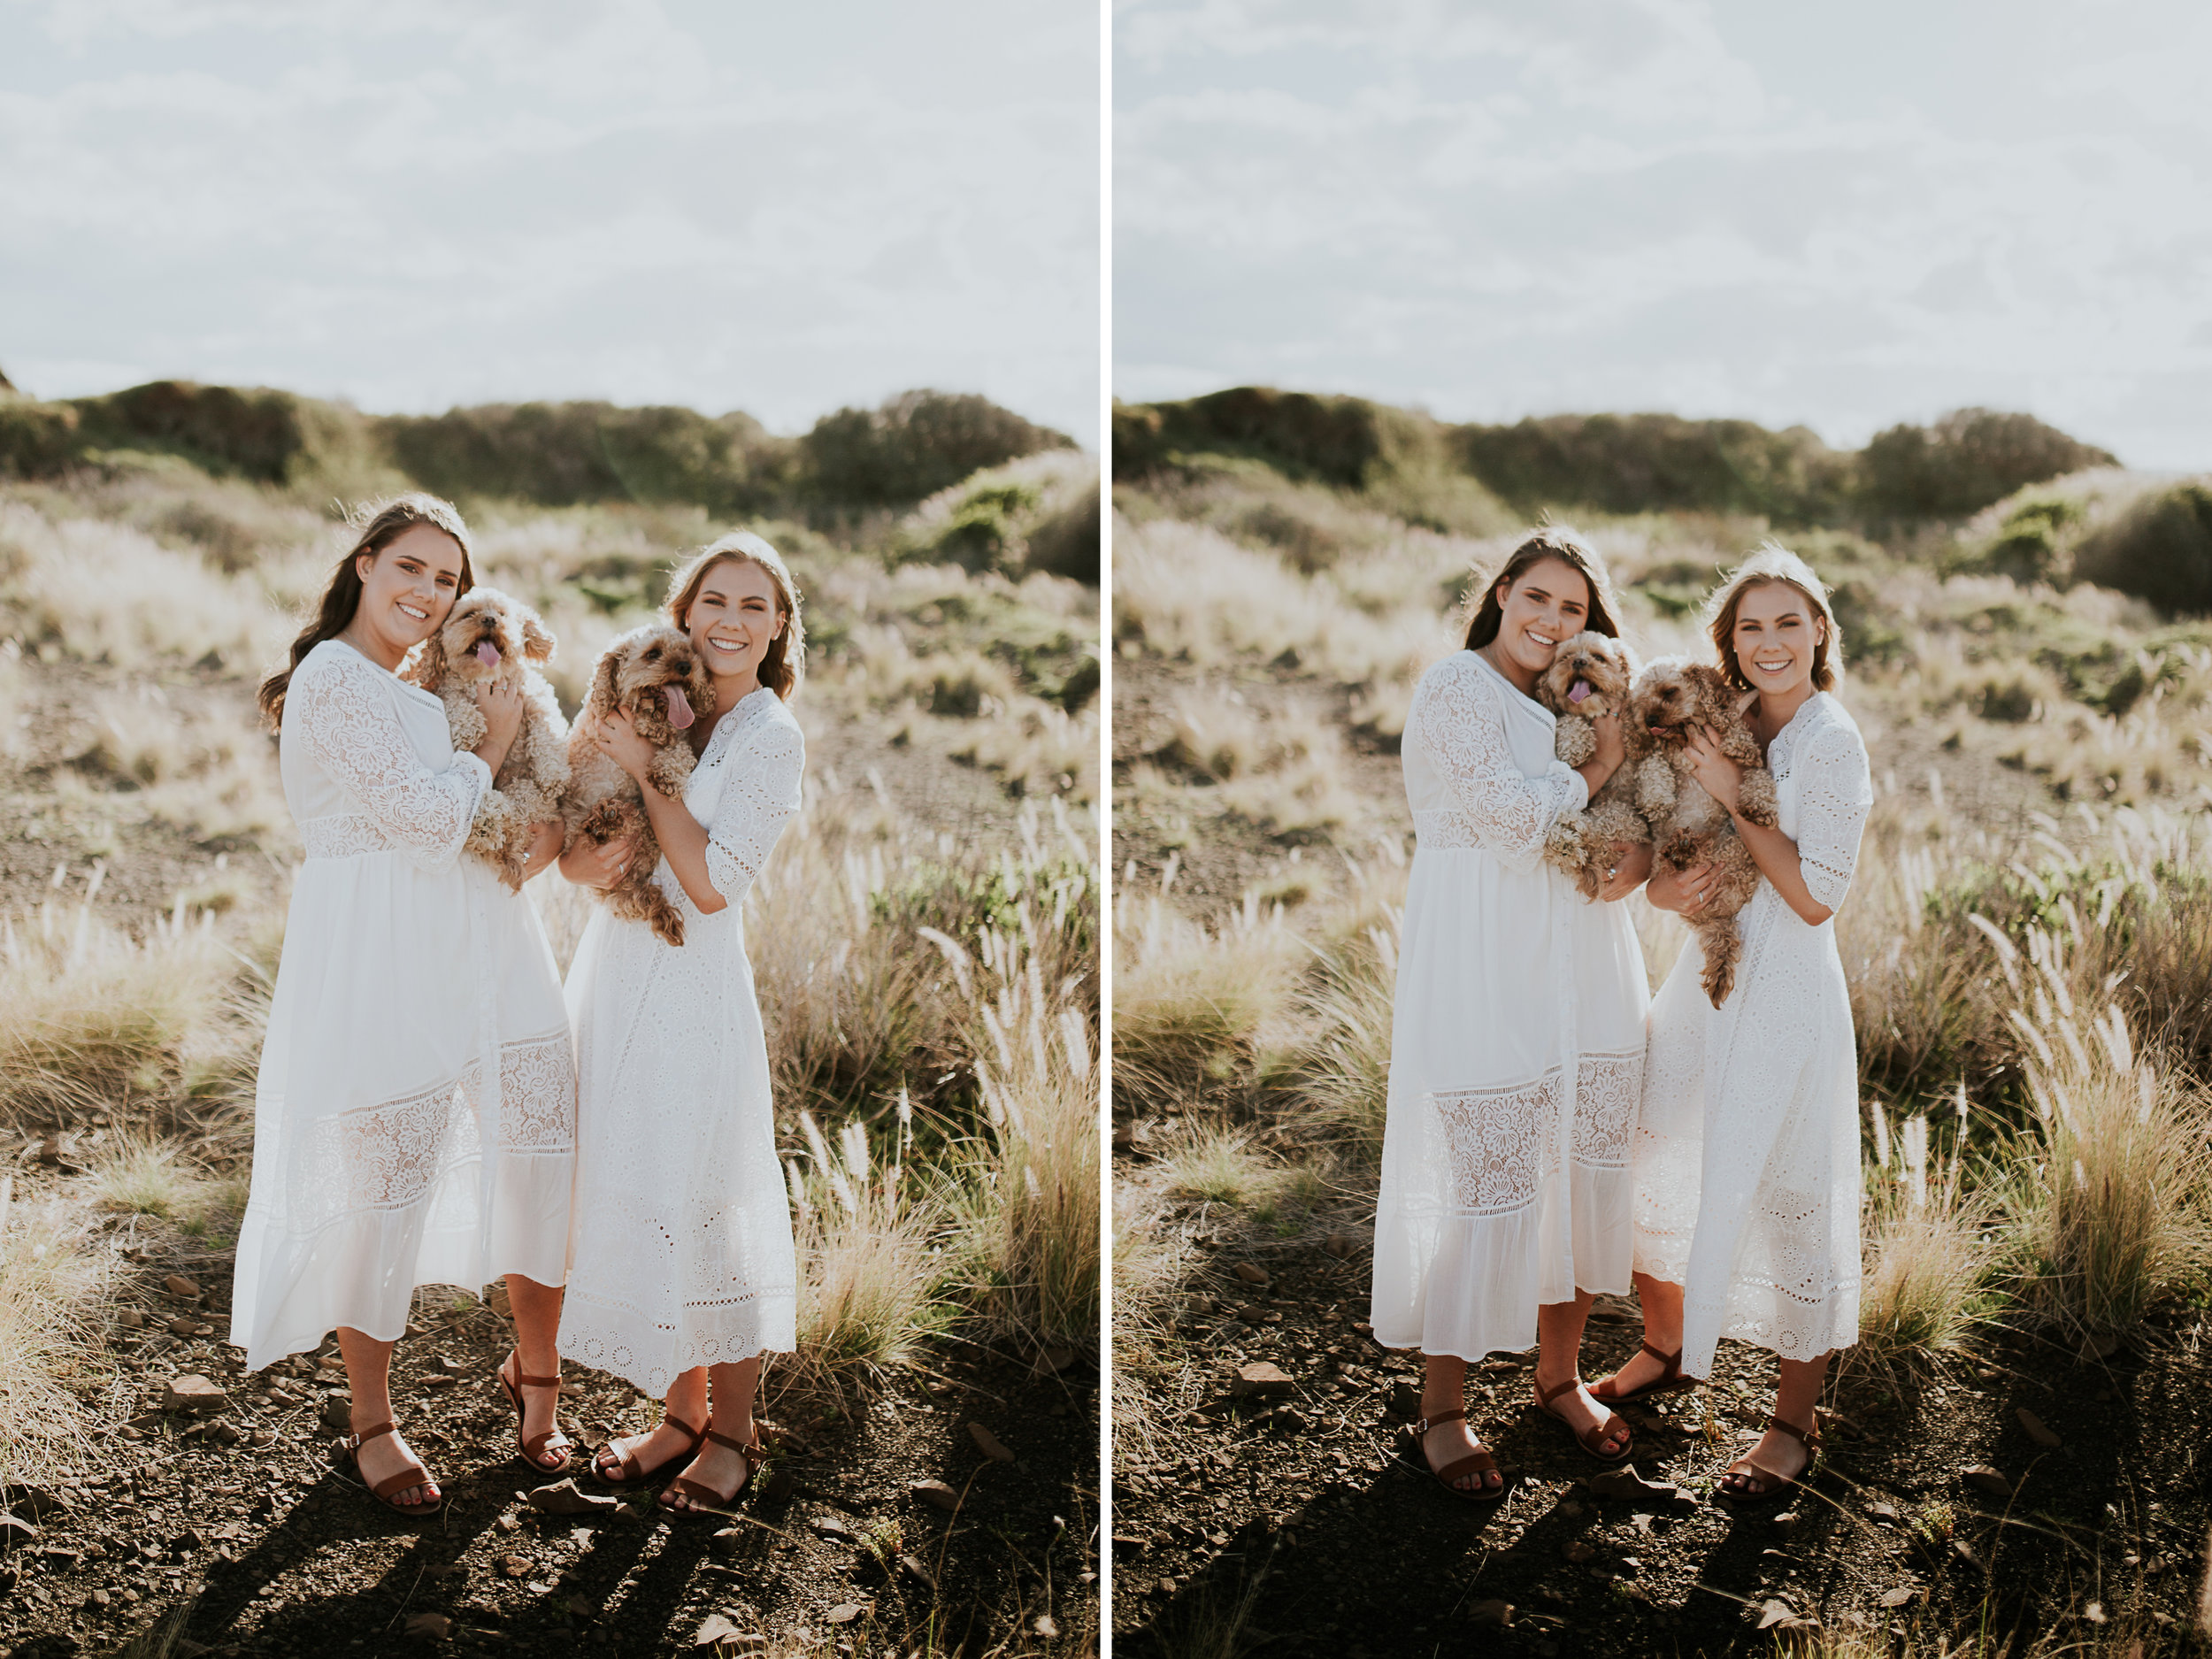 Meg+Leah+sisters+Relaxed+family+Session+Kiama.jpg